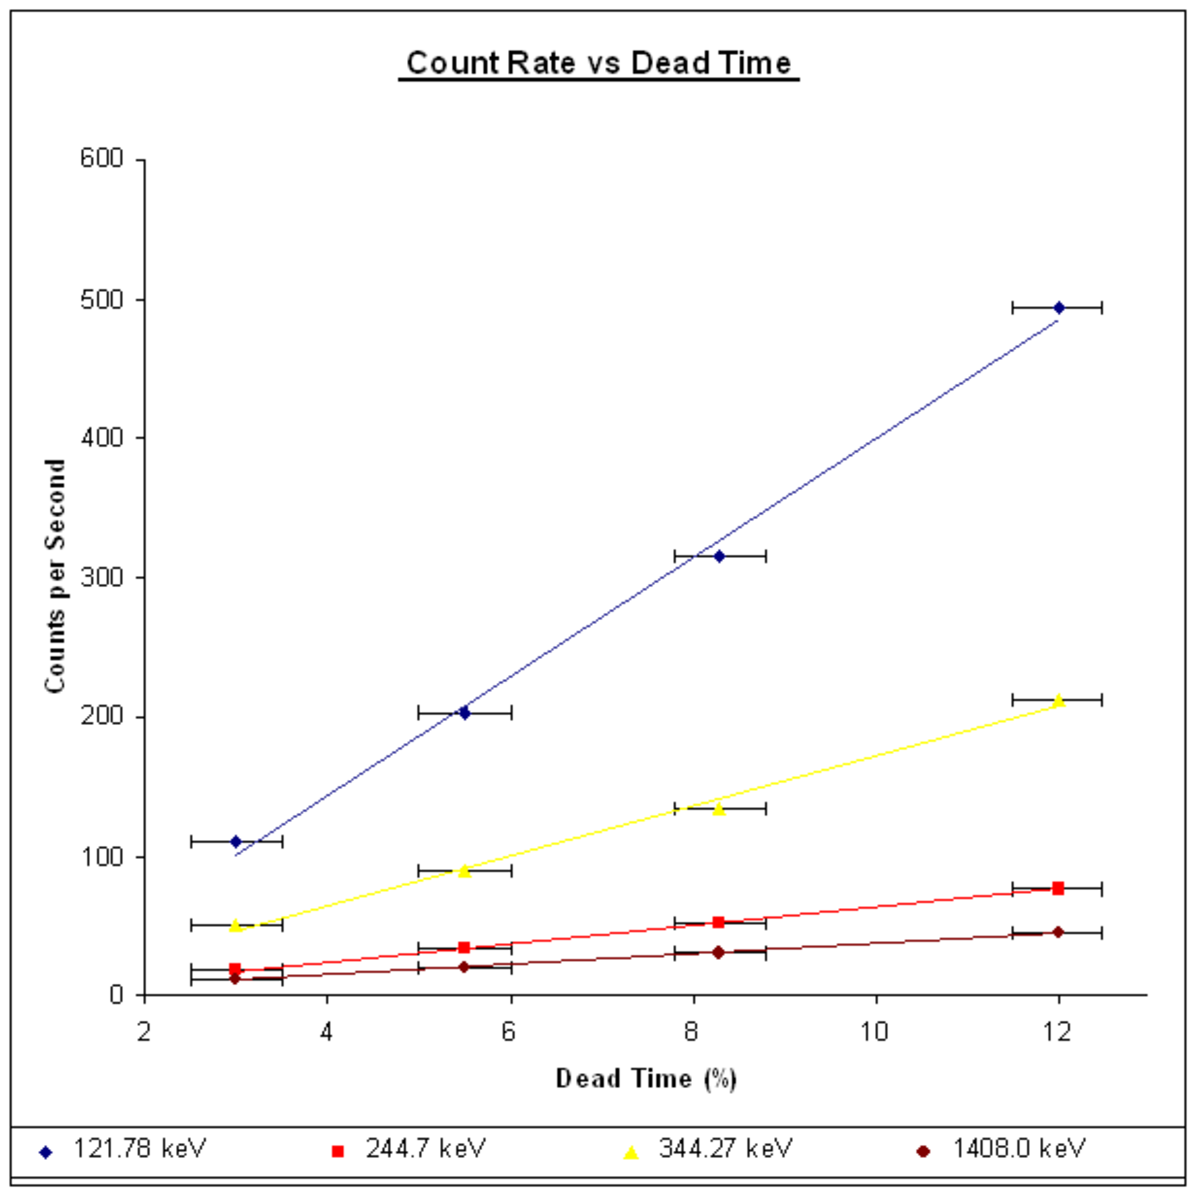 How dead time varies with count rate at four different gamma ray energies.